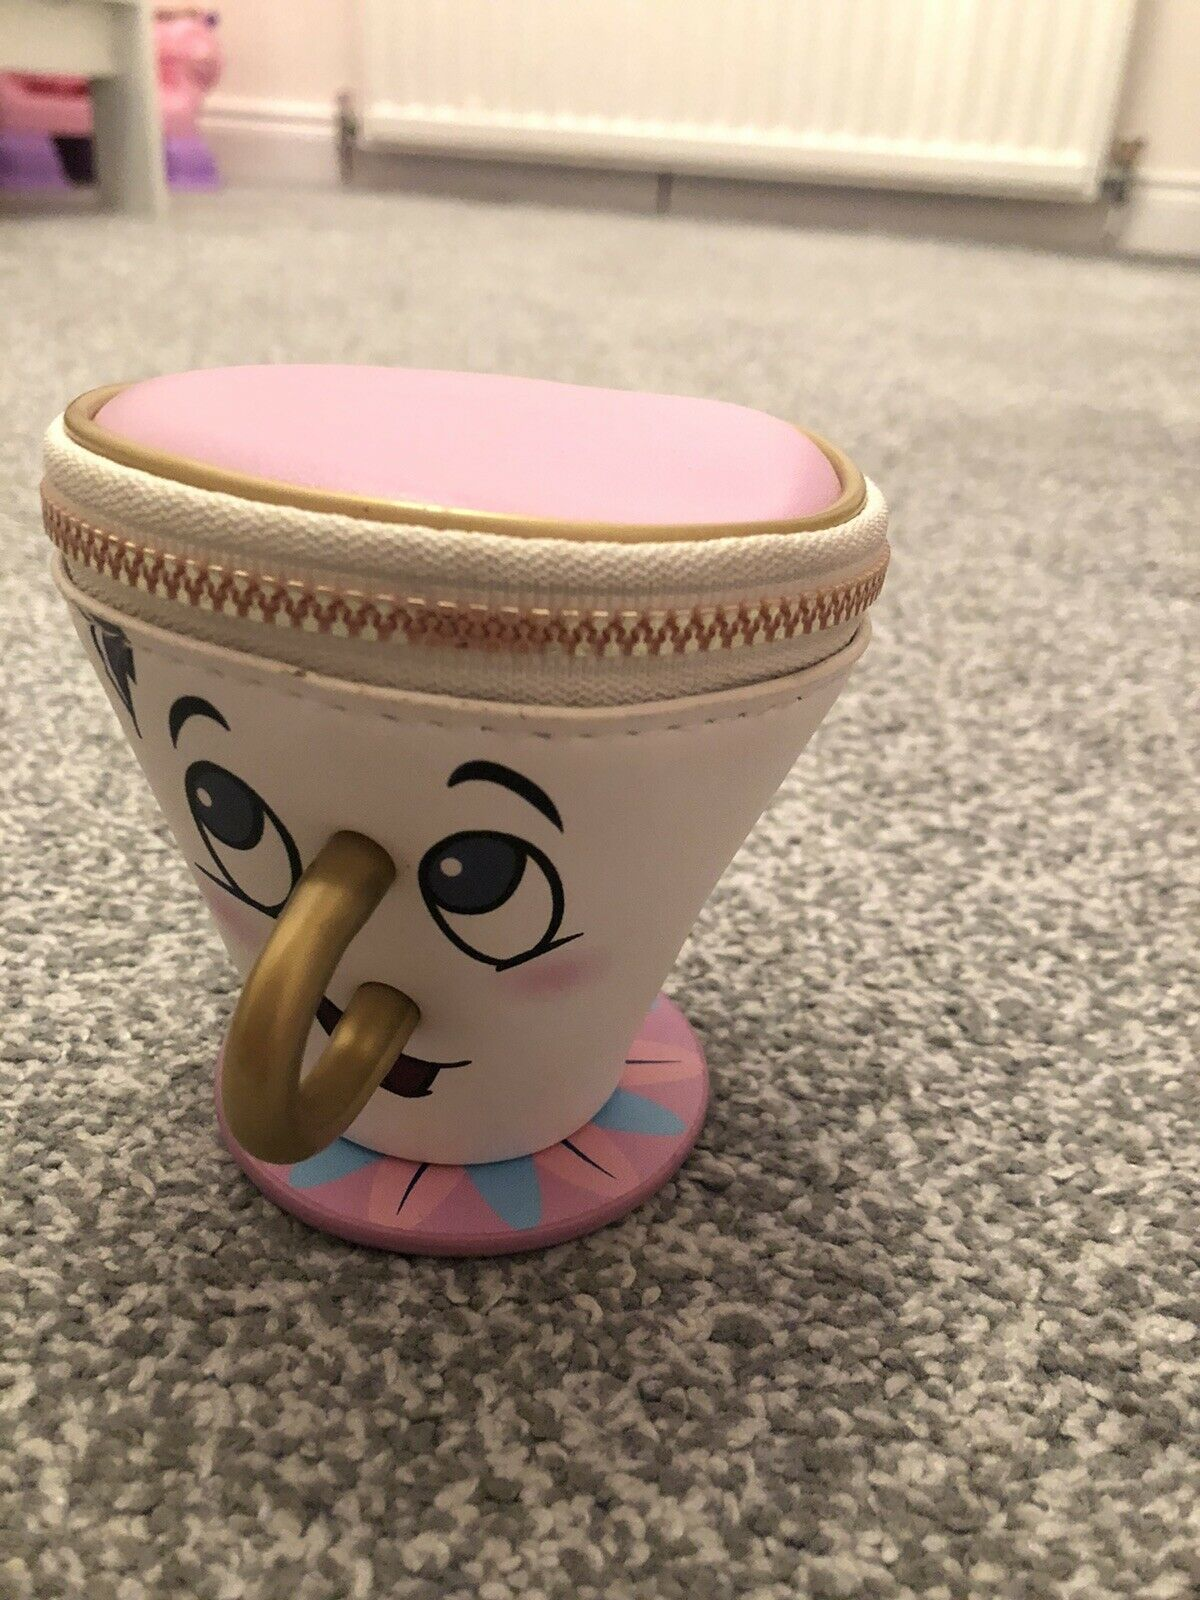 Disney Beauty And The Beast Primark Chip And Mrs Potts Purse